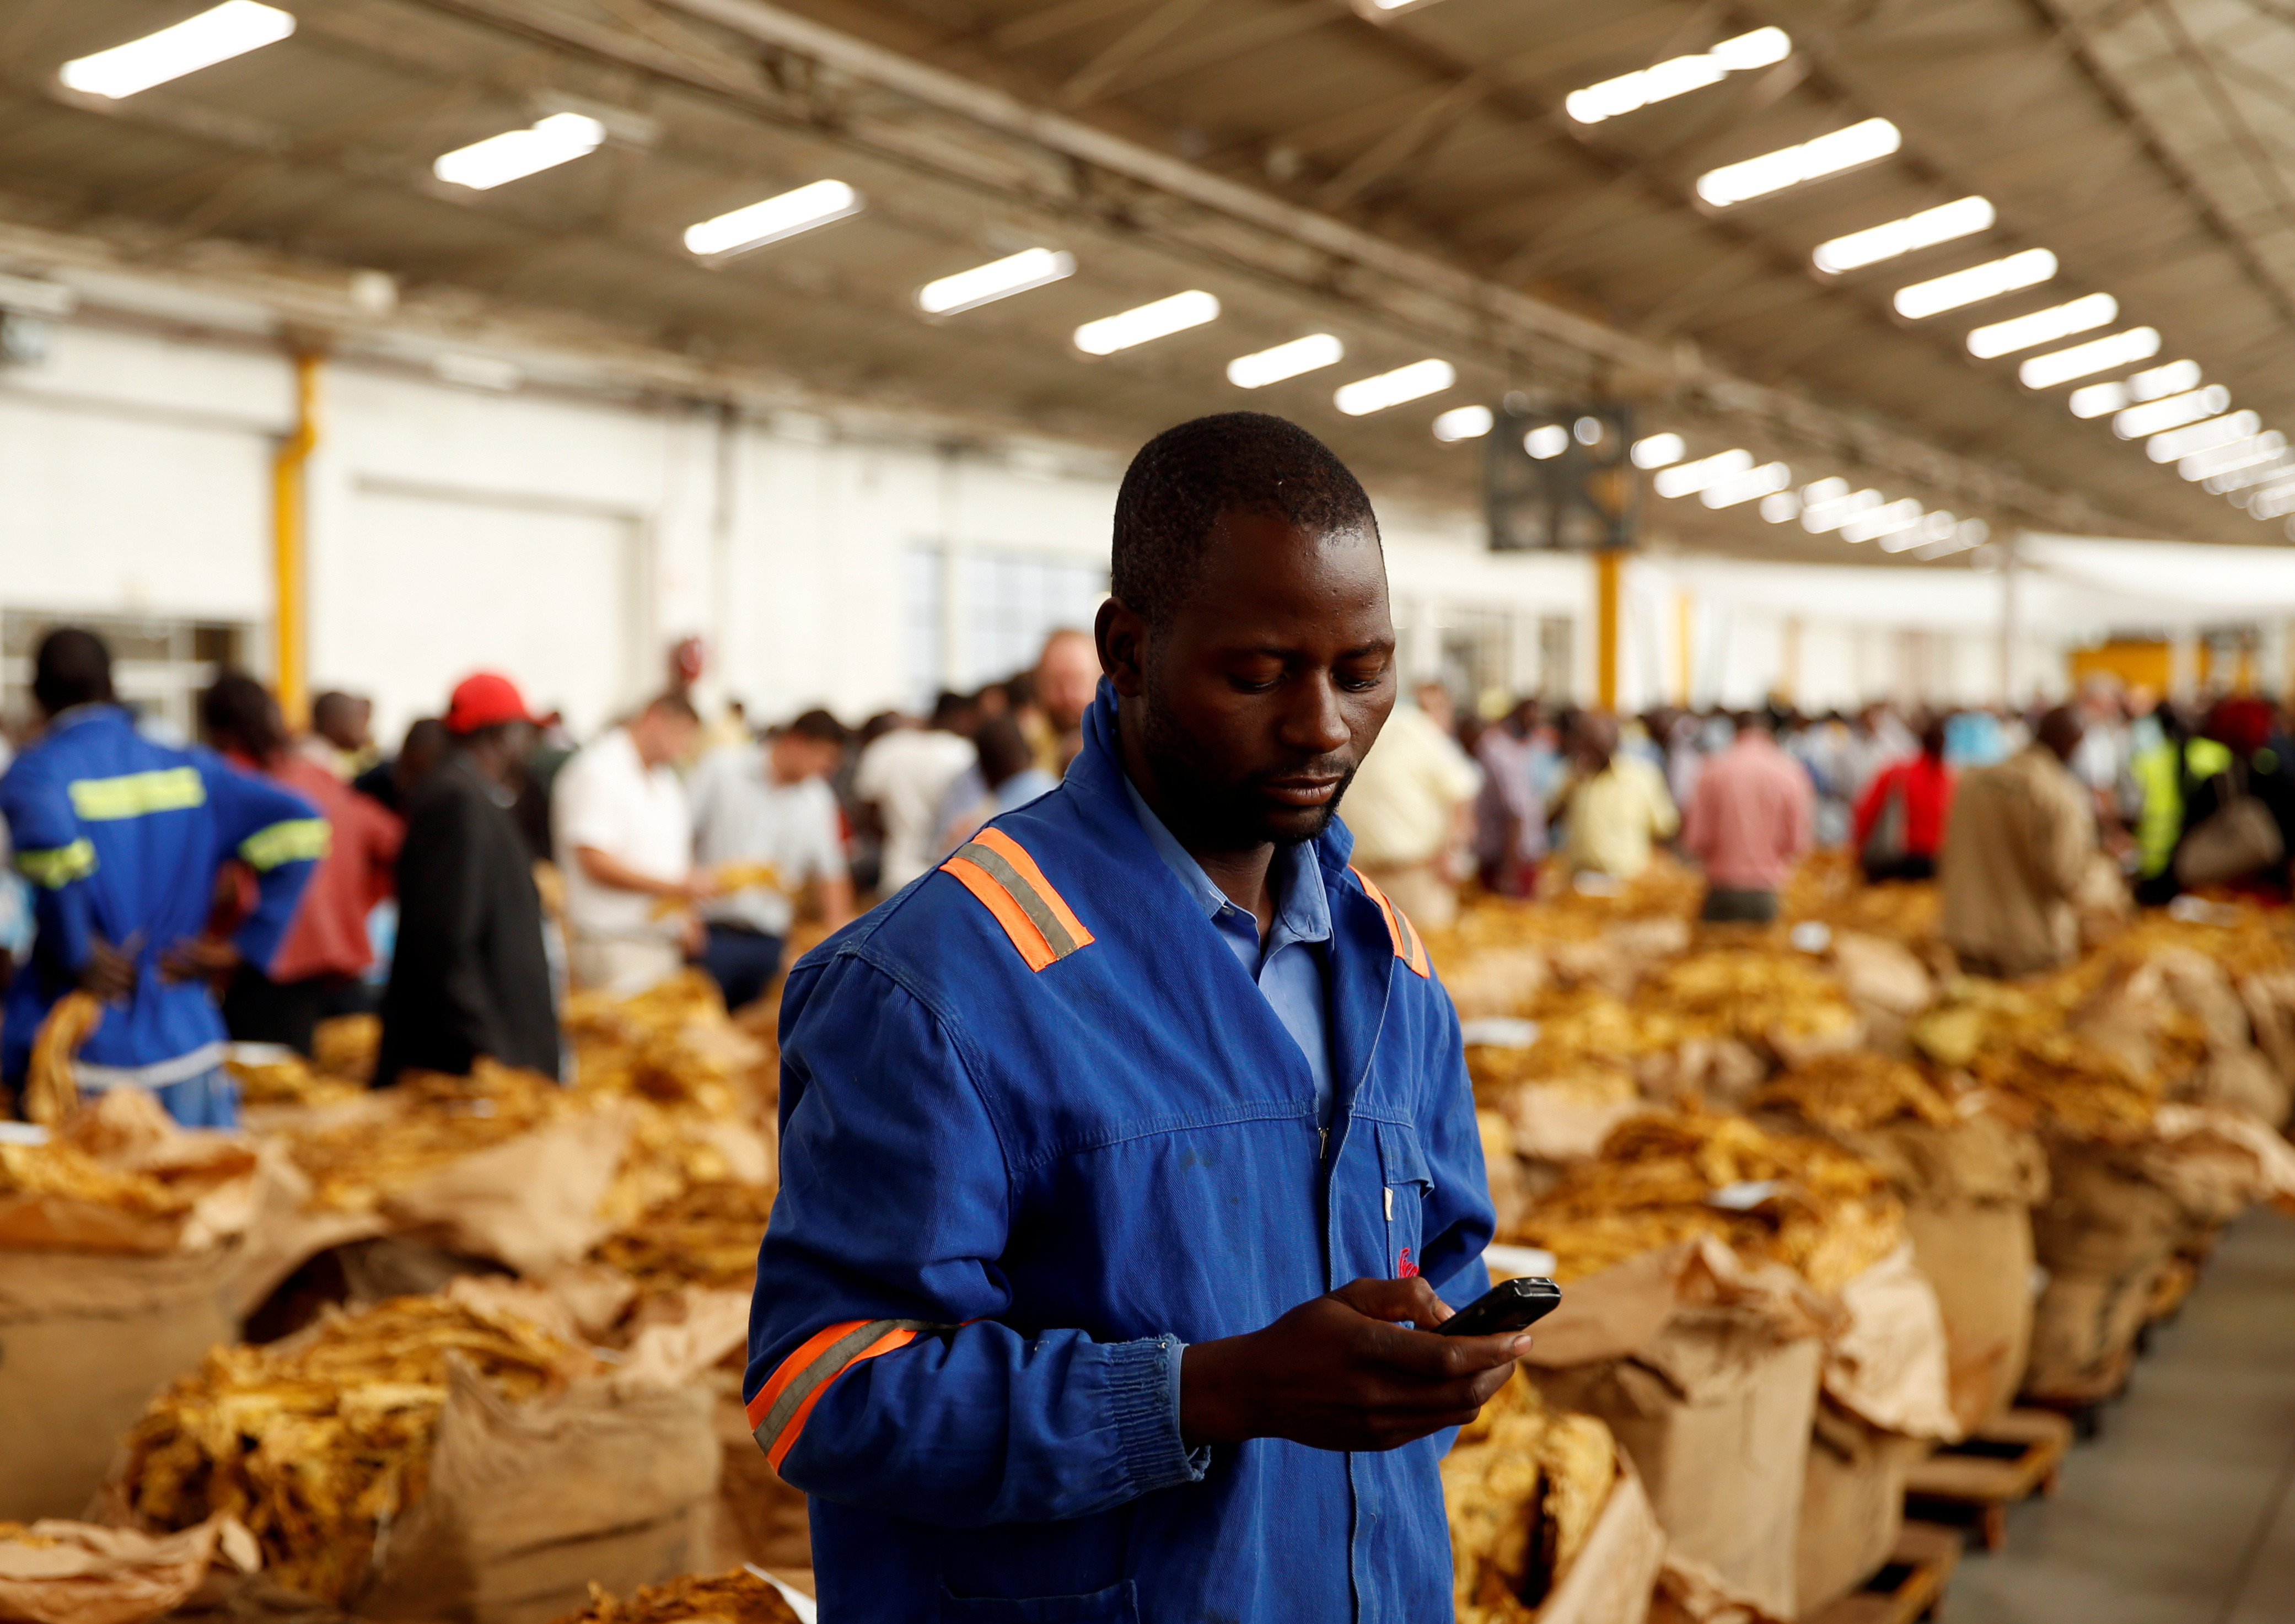 AfCFTA could raise the incomes of nearly 100 million across the continent – with paytech's help.